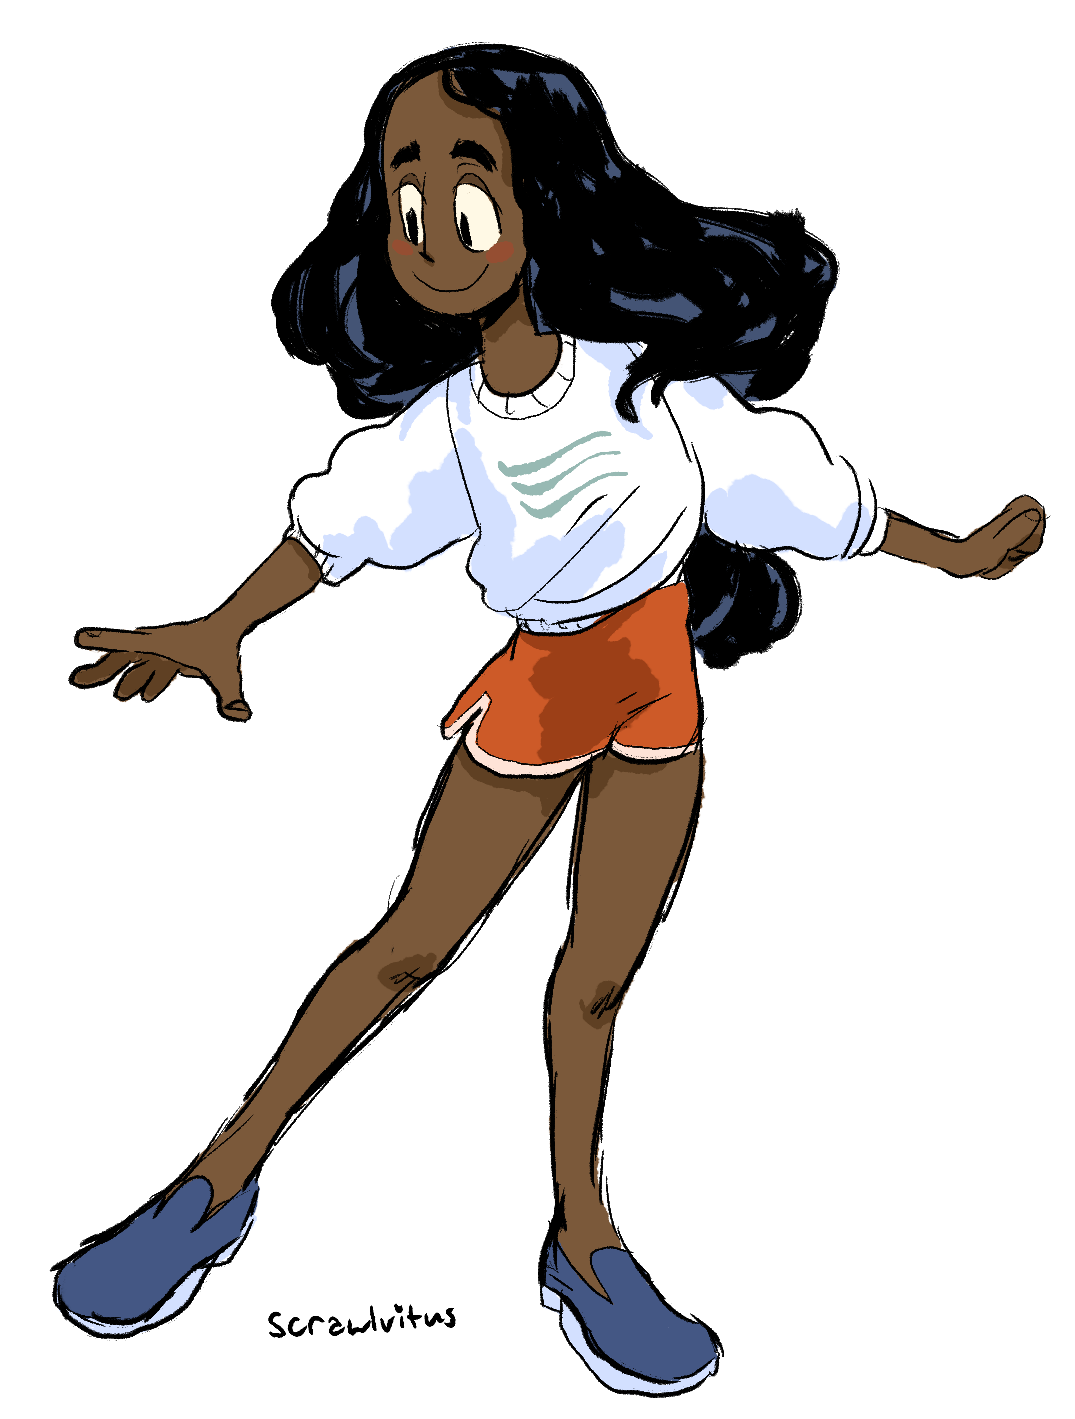 anyway here's connie the best girl ever made